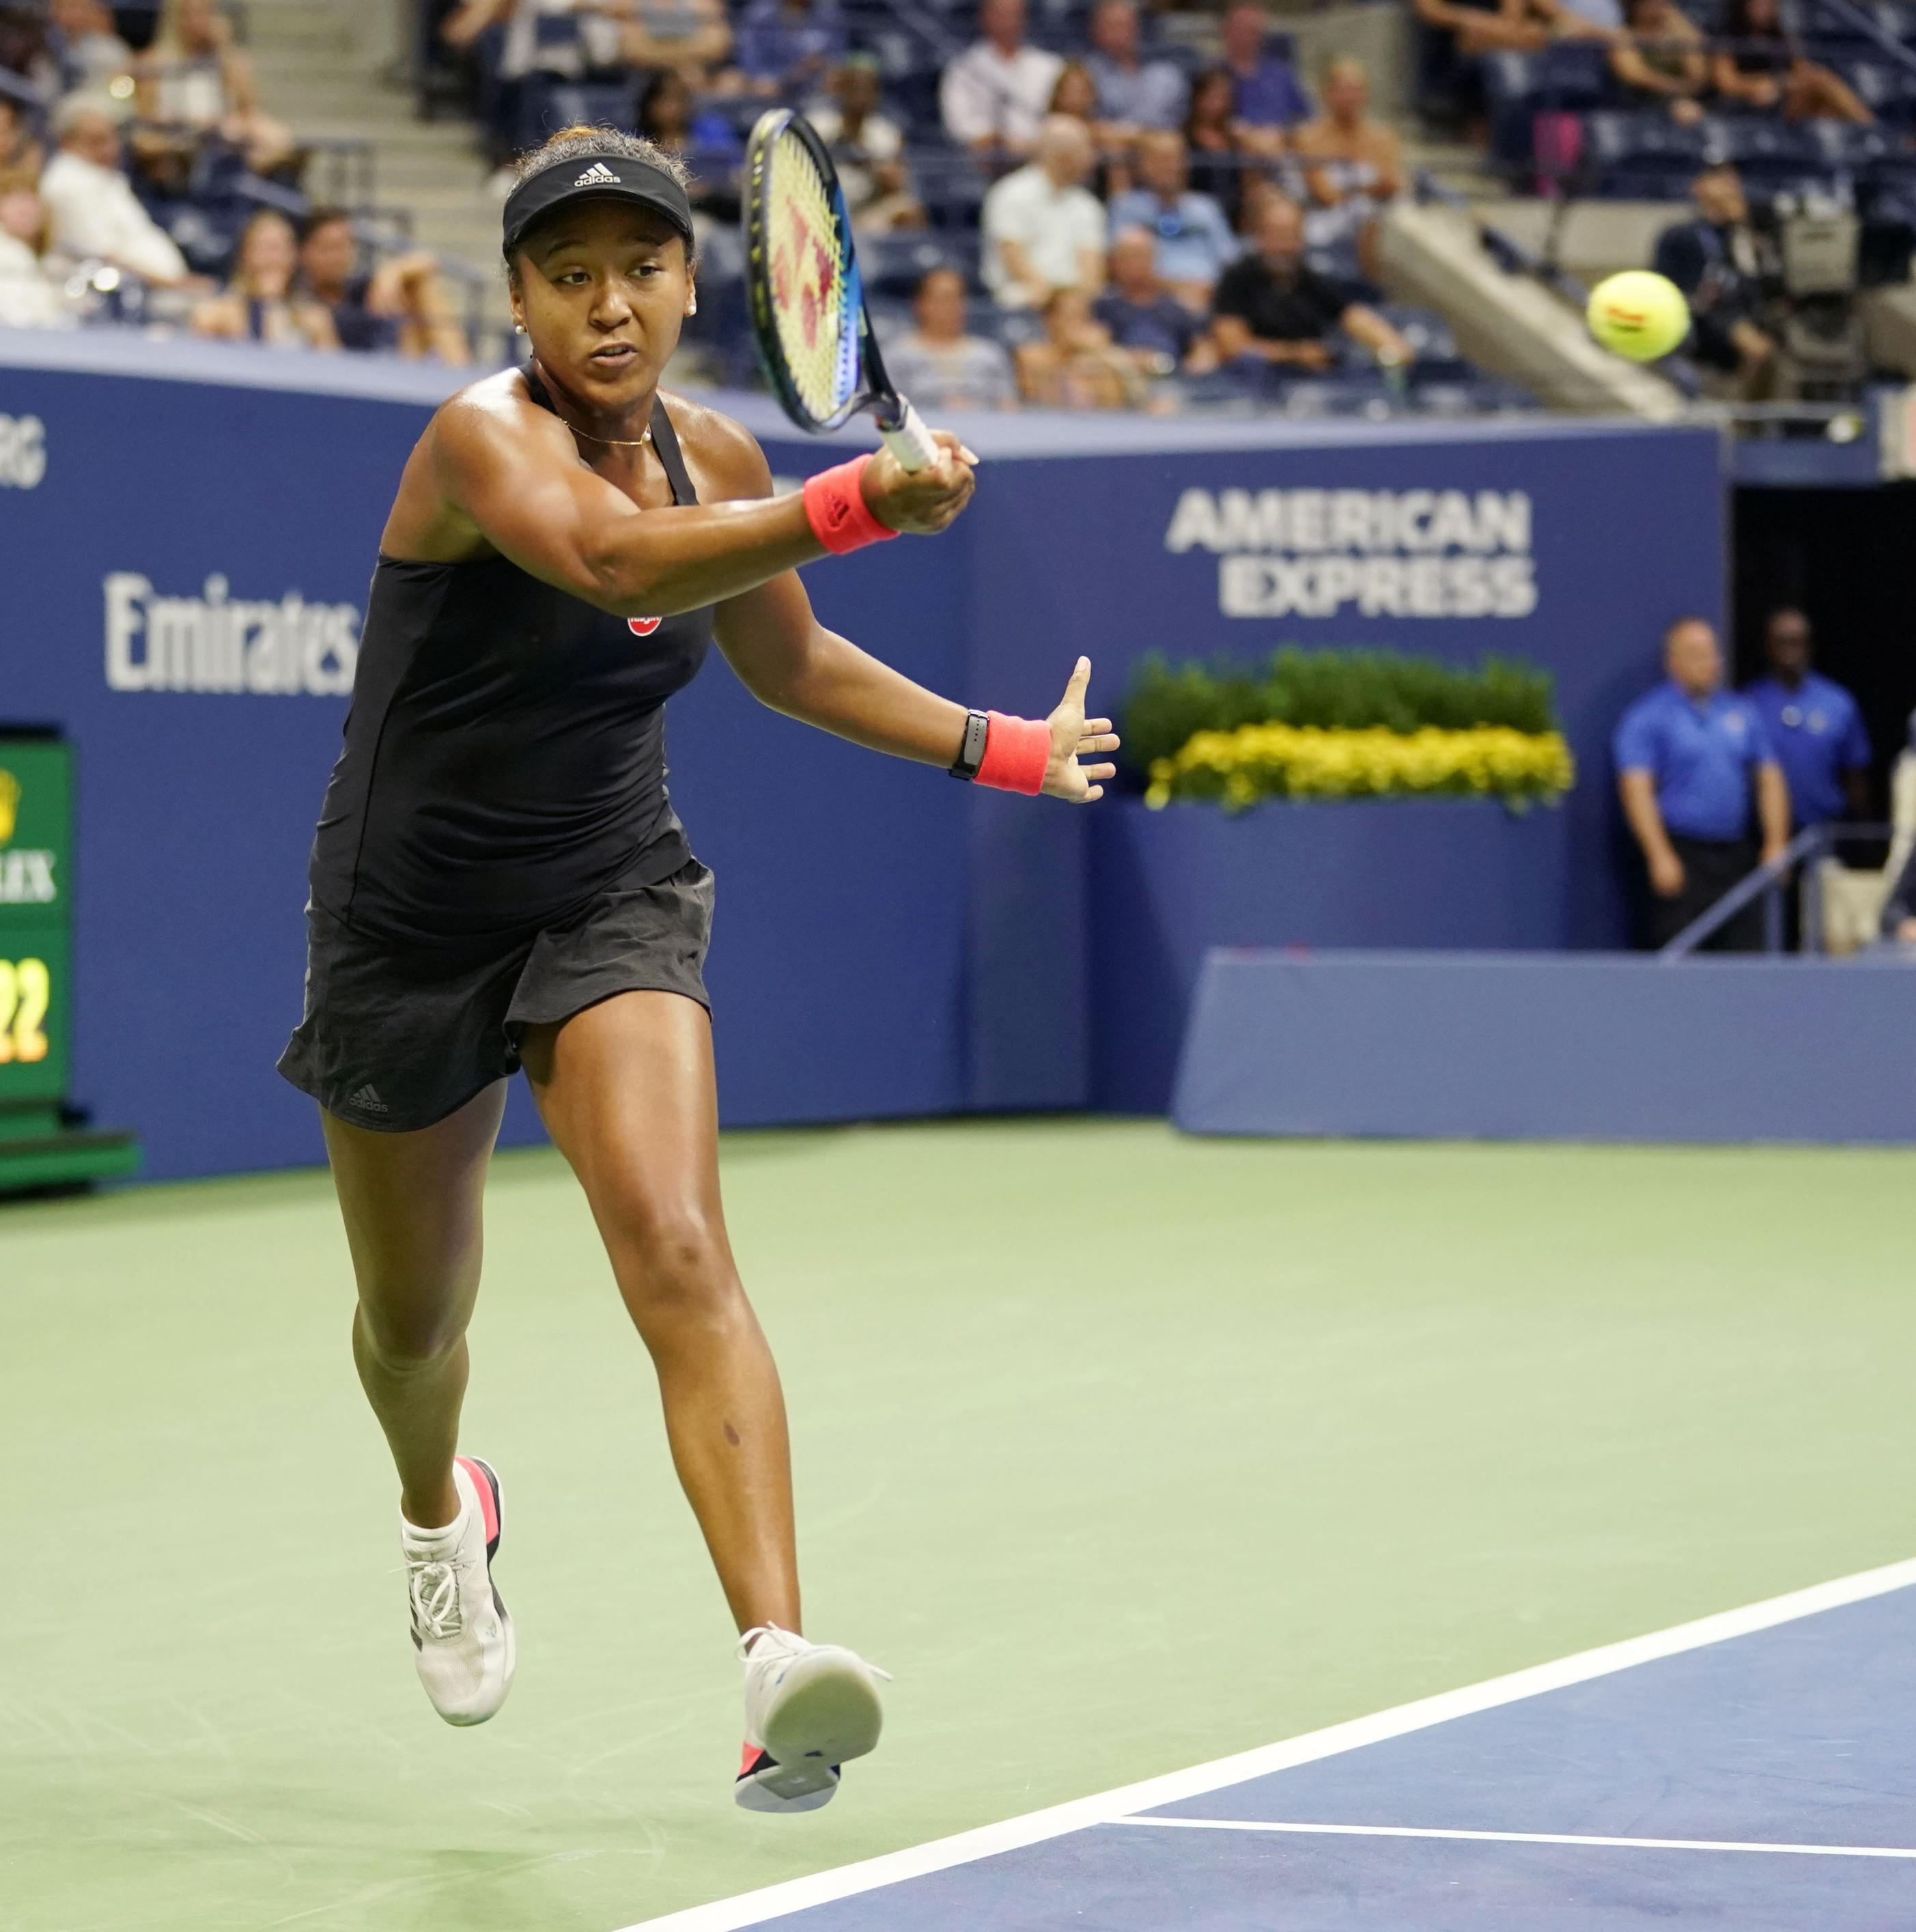 Naomi Osaka Becomes First Japanese Woman to Make U.S. Grand Slam